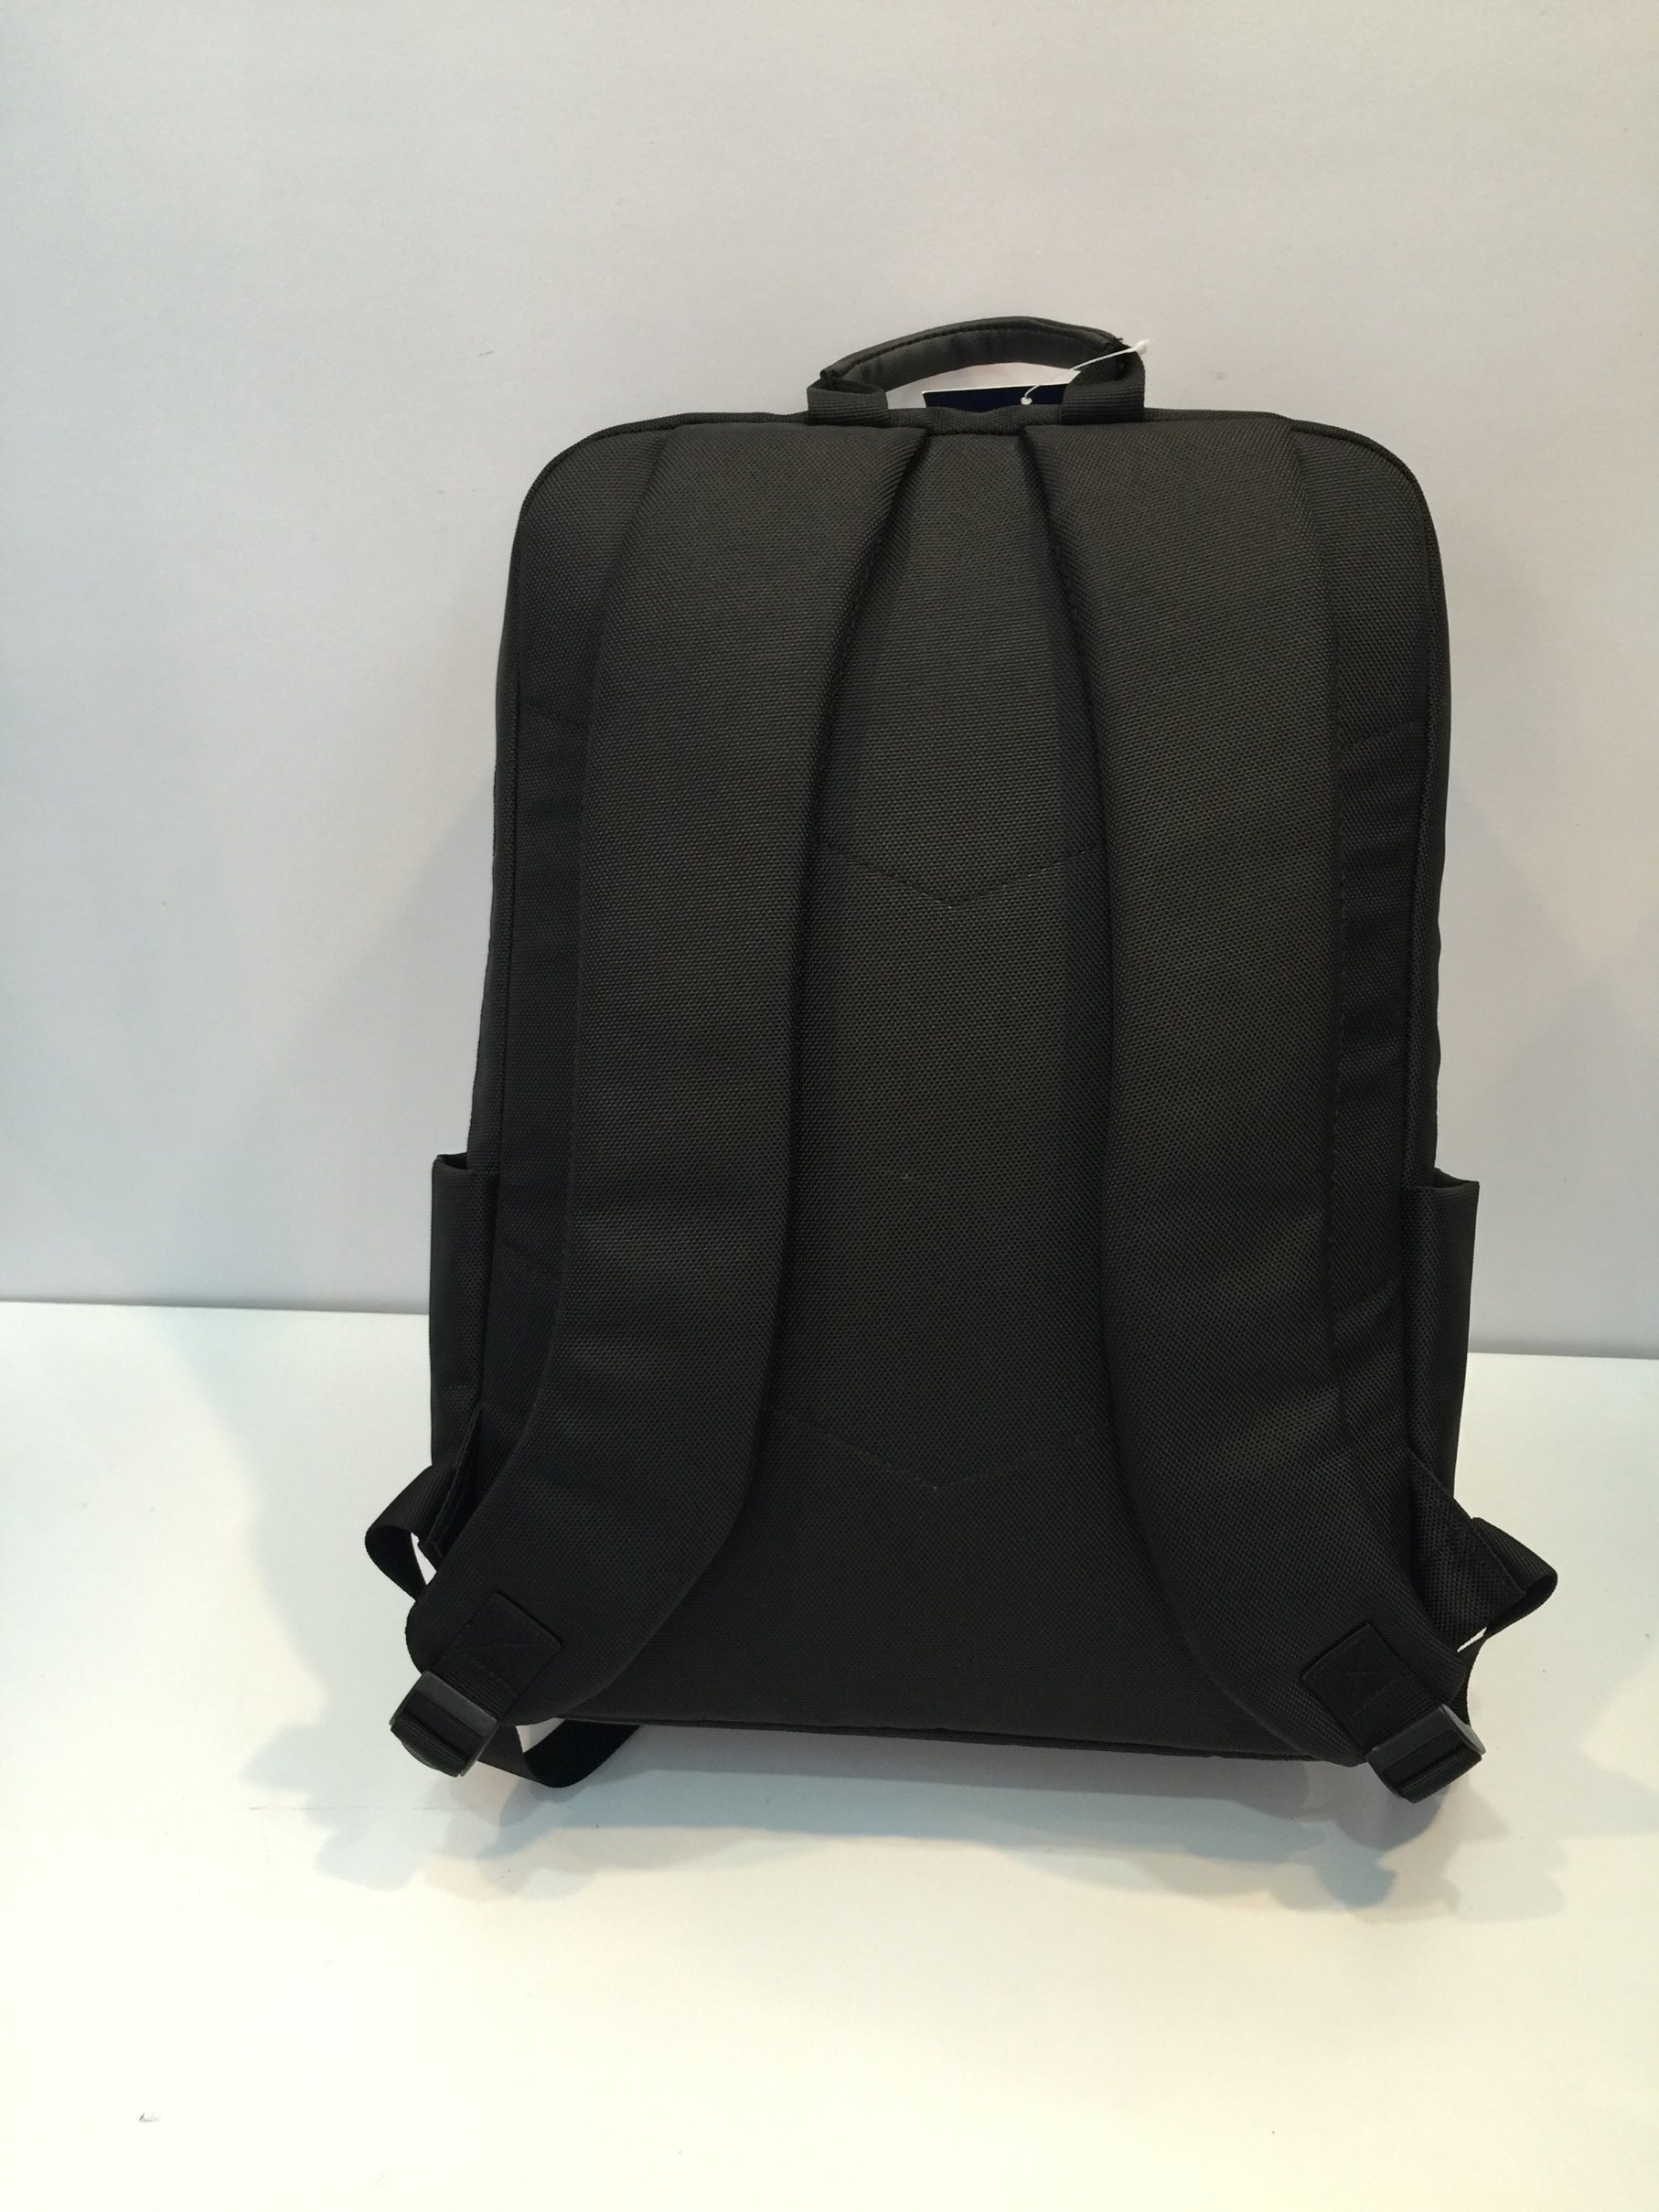 Polyester 1680d Double Shares / Flat Bottom Backpack for Work/School/Travling